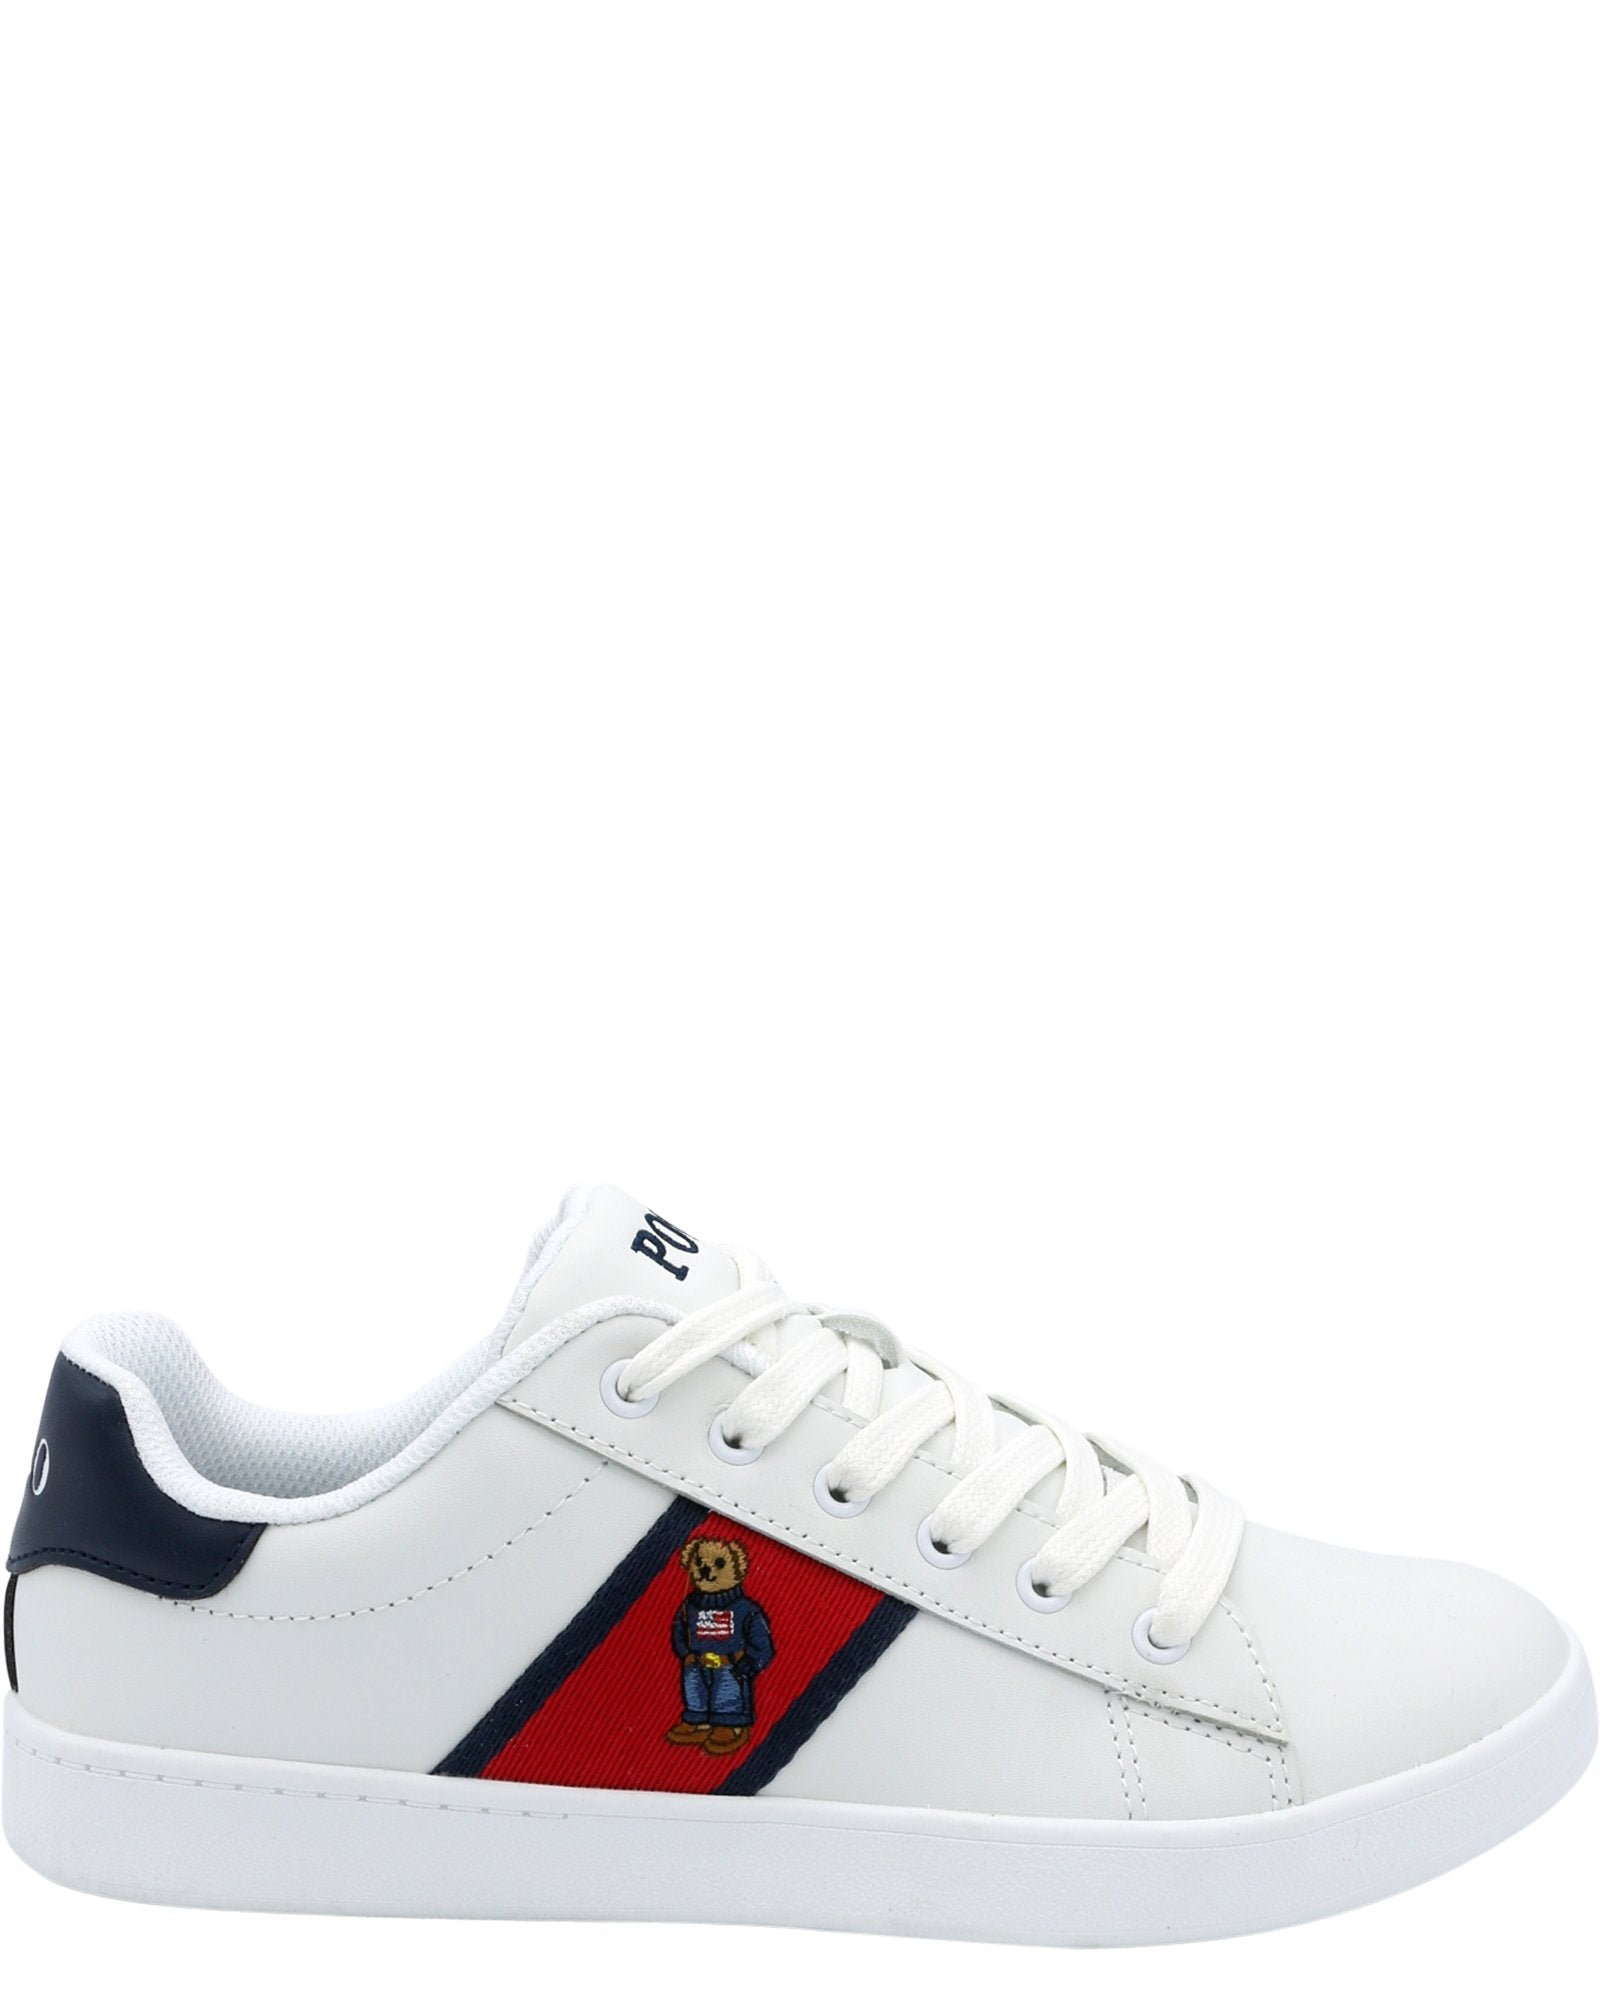 Polo Ralph Lauren Boy/'s Shoes Runner Lace Ups White Red